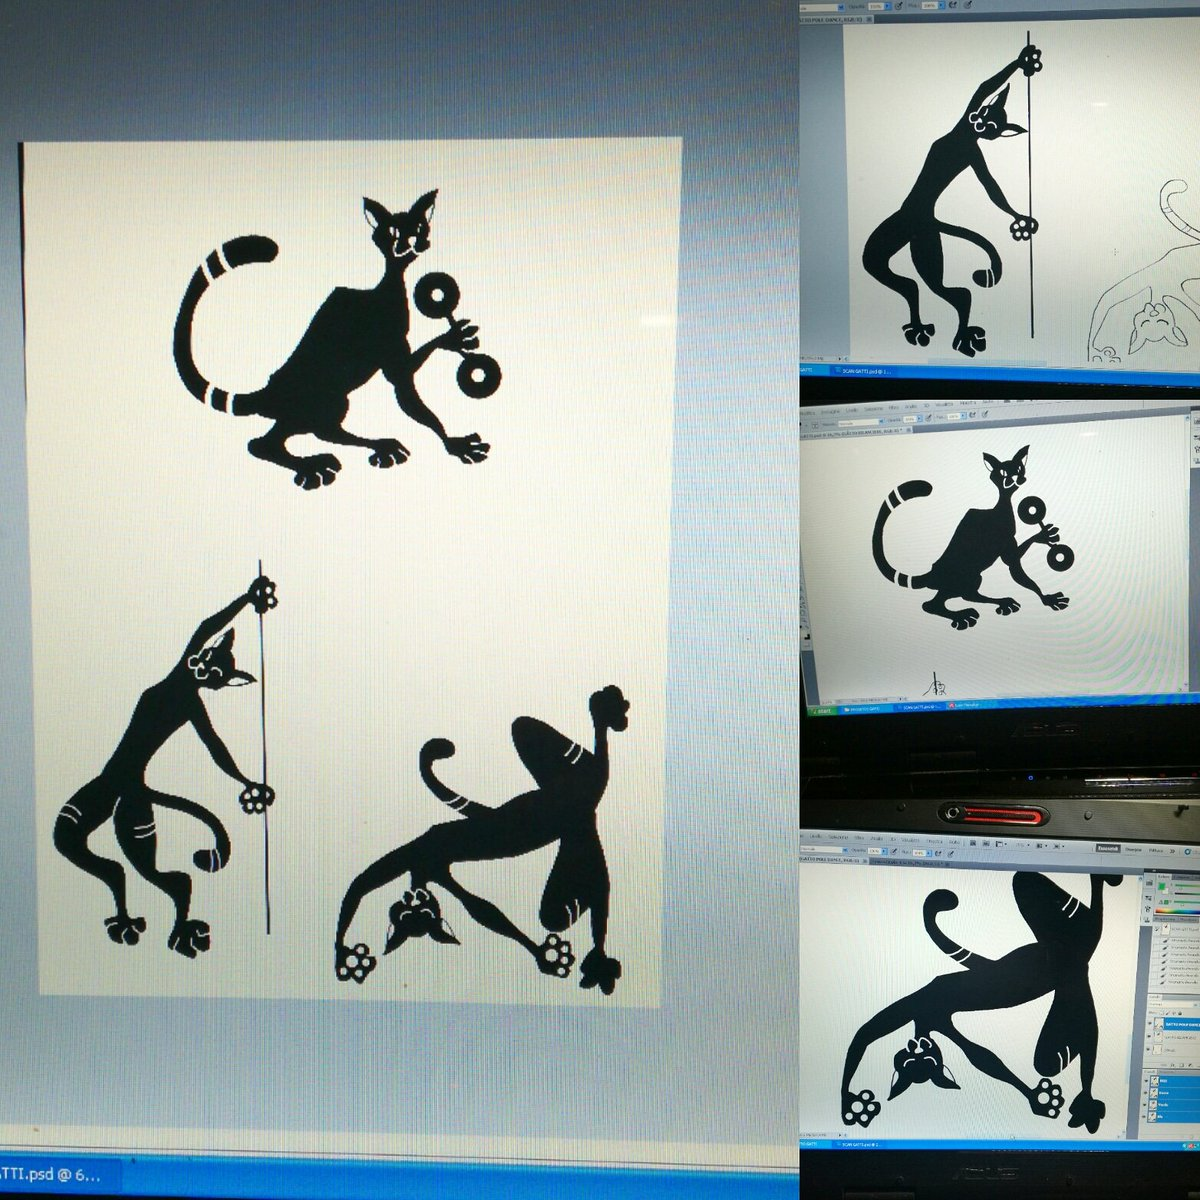 Mici, photoshop e bamboo... #wip #cats #photoshop #art #sphinx #sphinxcat #bamboo #bamboowacom #workinprogress #gatti #gattoegiziano #illustration #illustrazione #sport #poledance #fitness #training #comics #blackcatpic.twitter.com/Vf4UE69XtZ